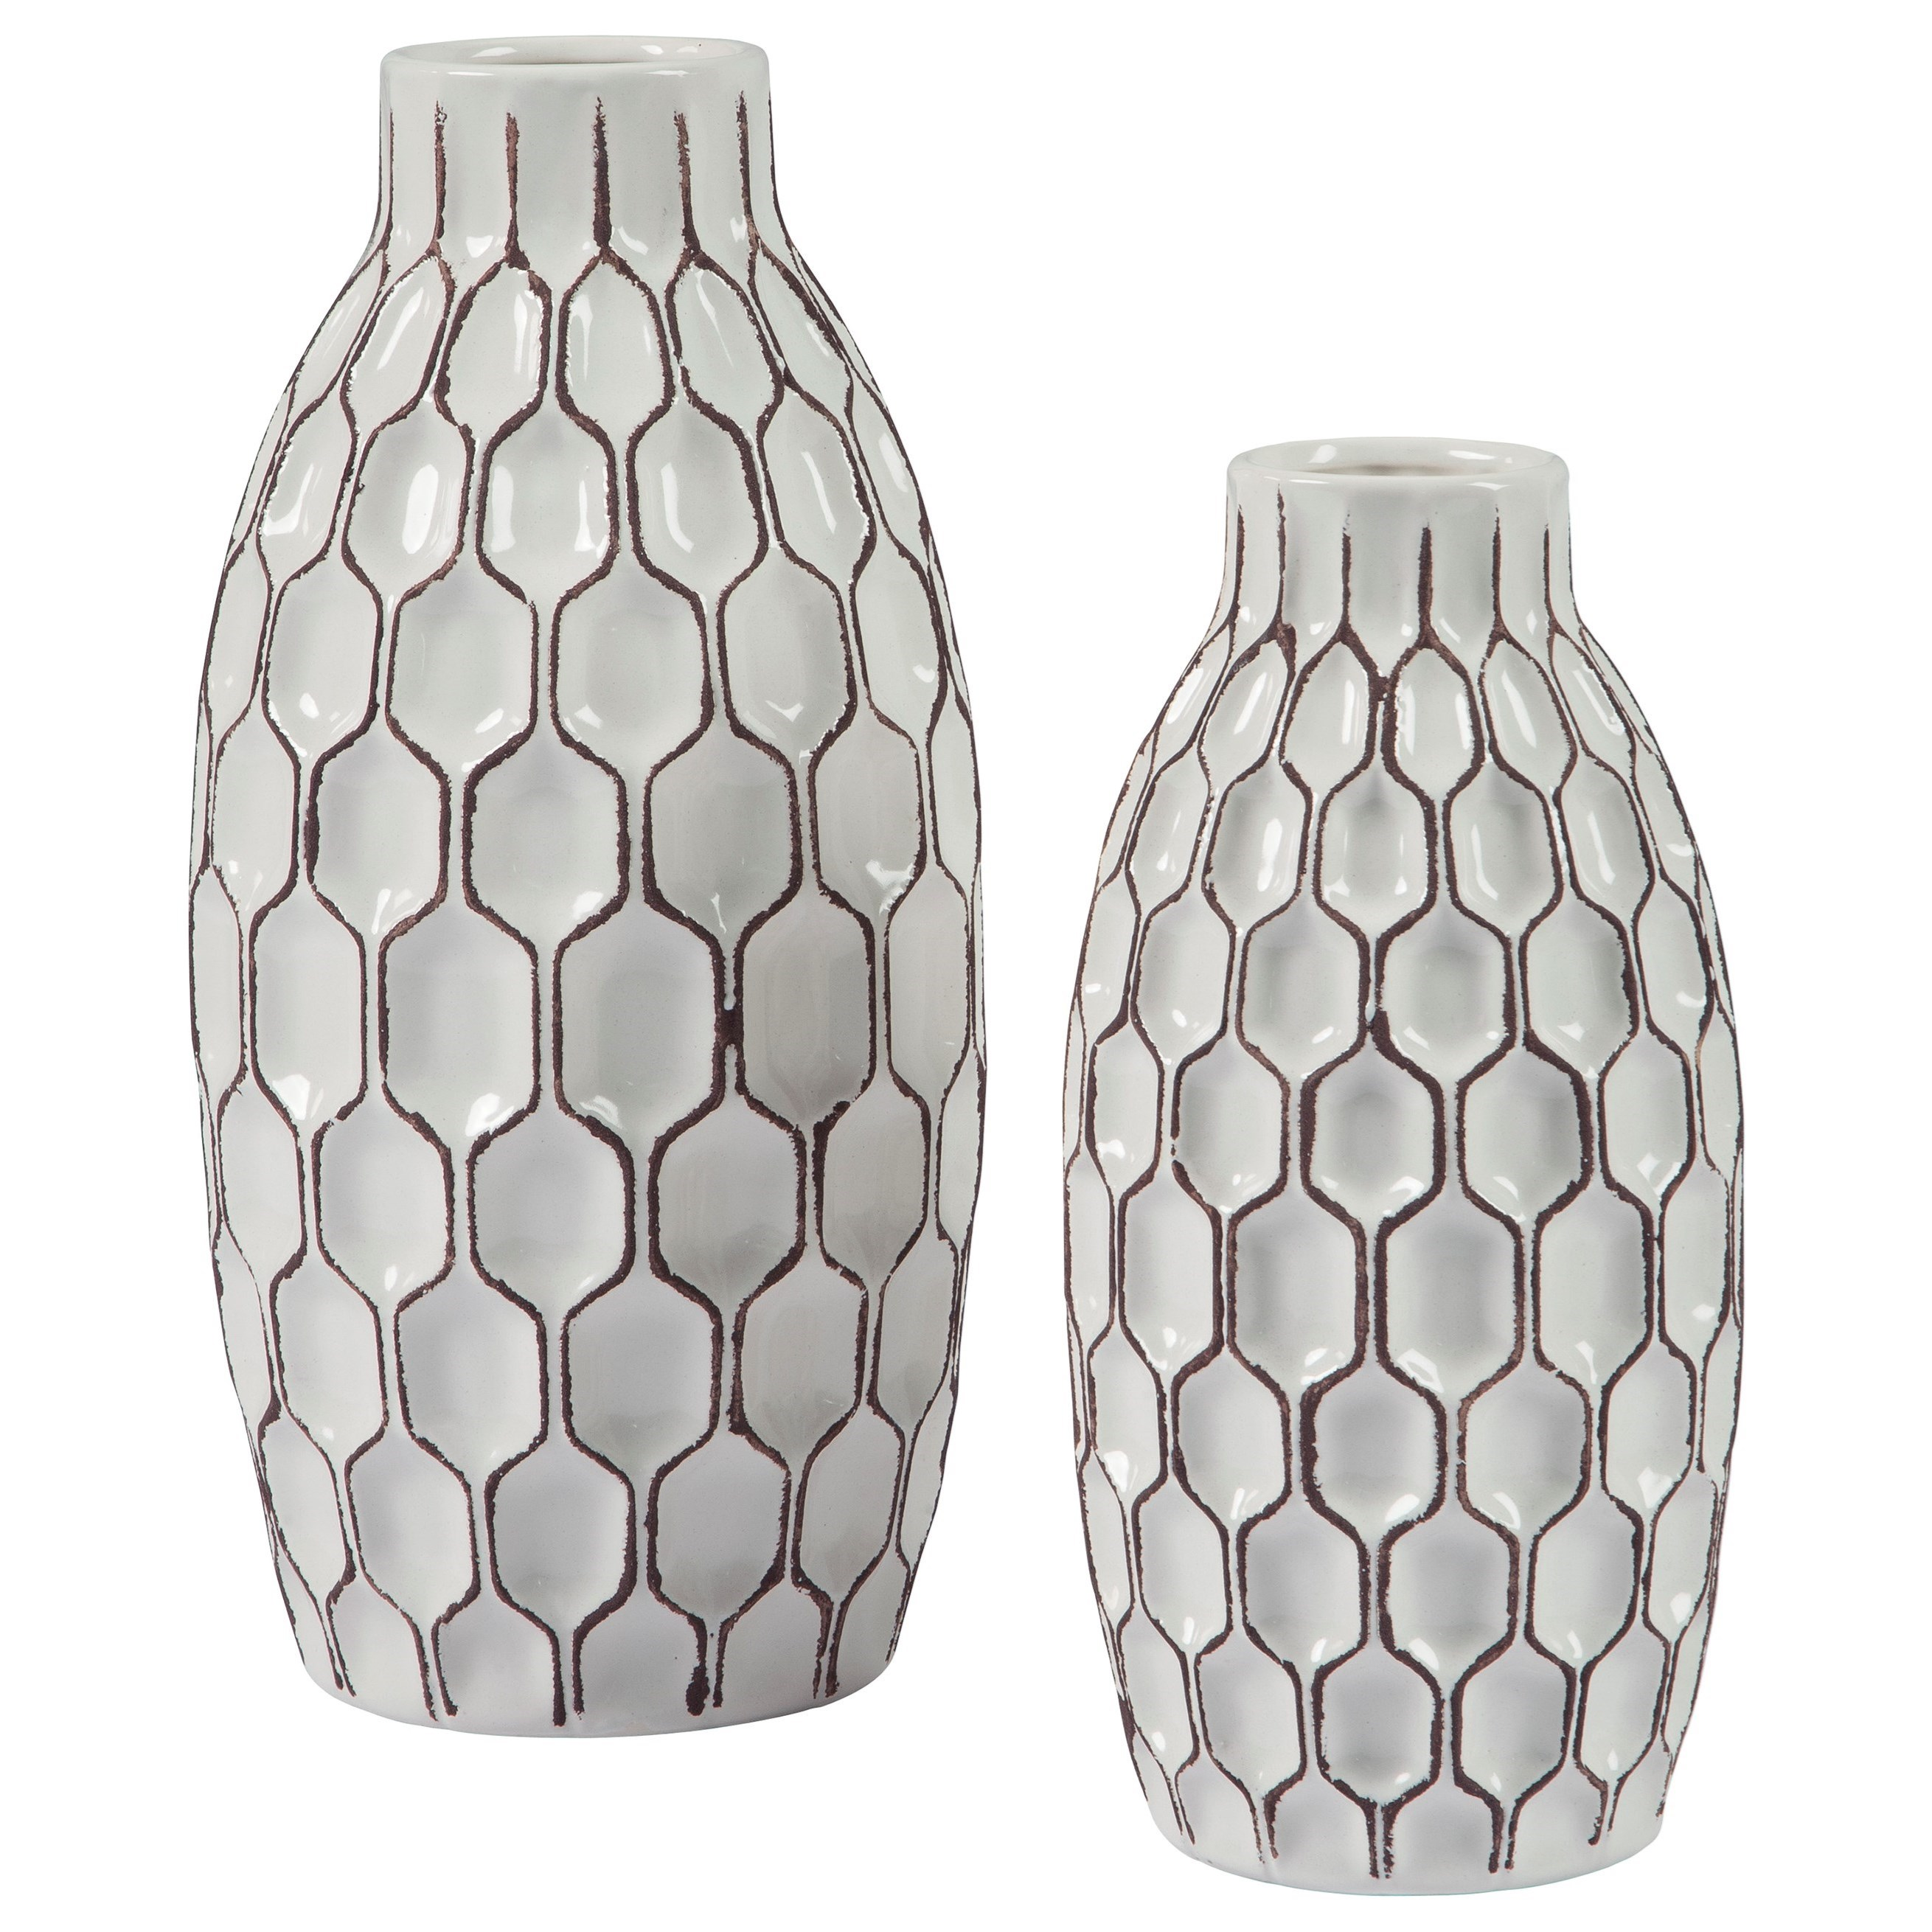 Accents 2-Piece Dionna White Vase Set by Signature Design by Ashley at Simply Home by Lindy's